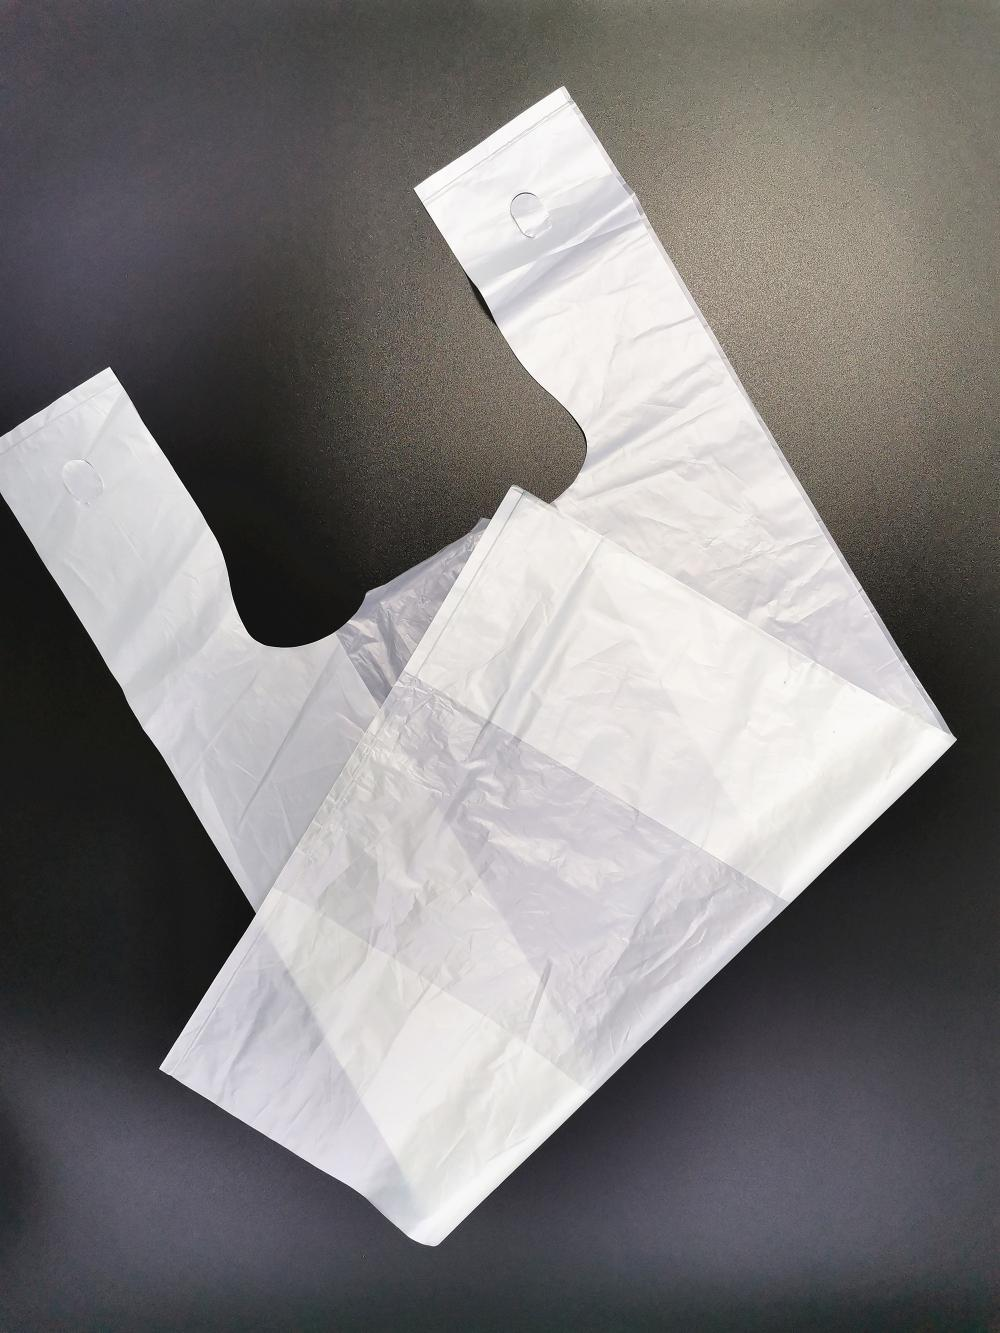 100% Bio Degradable Plastic Bags